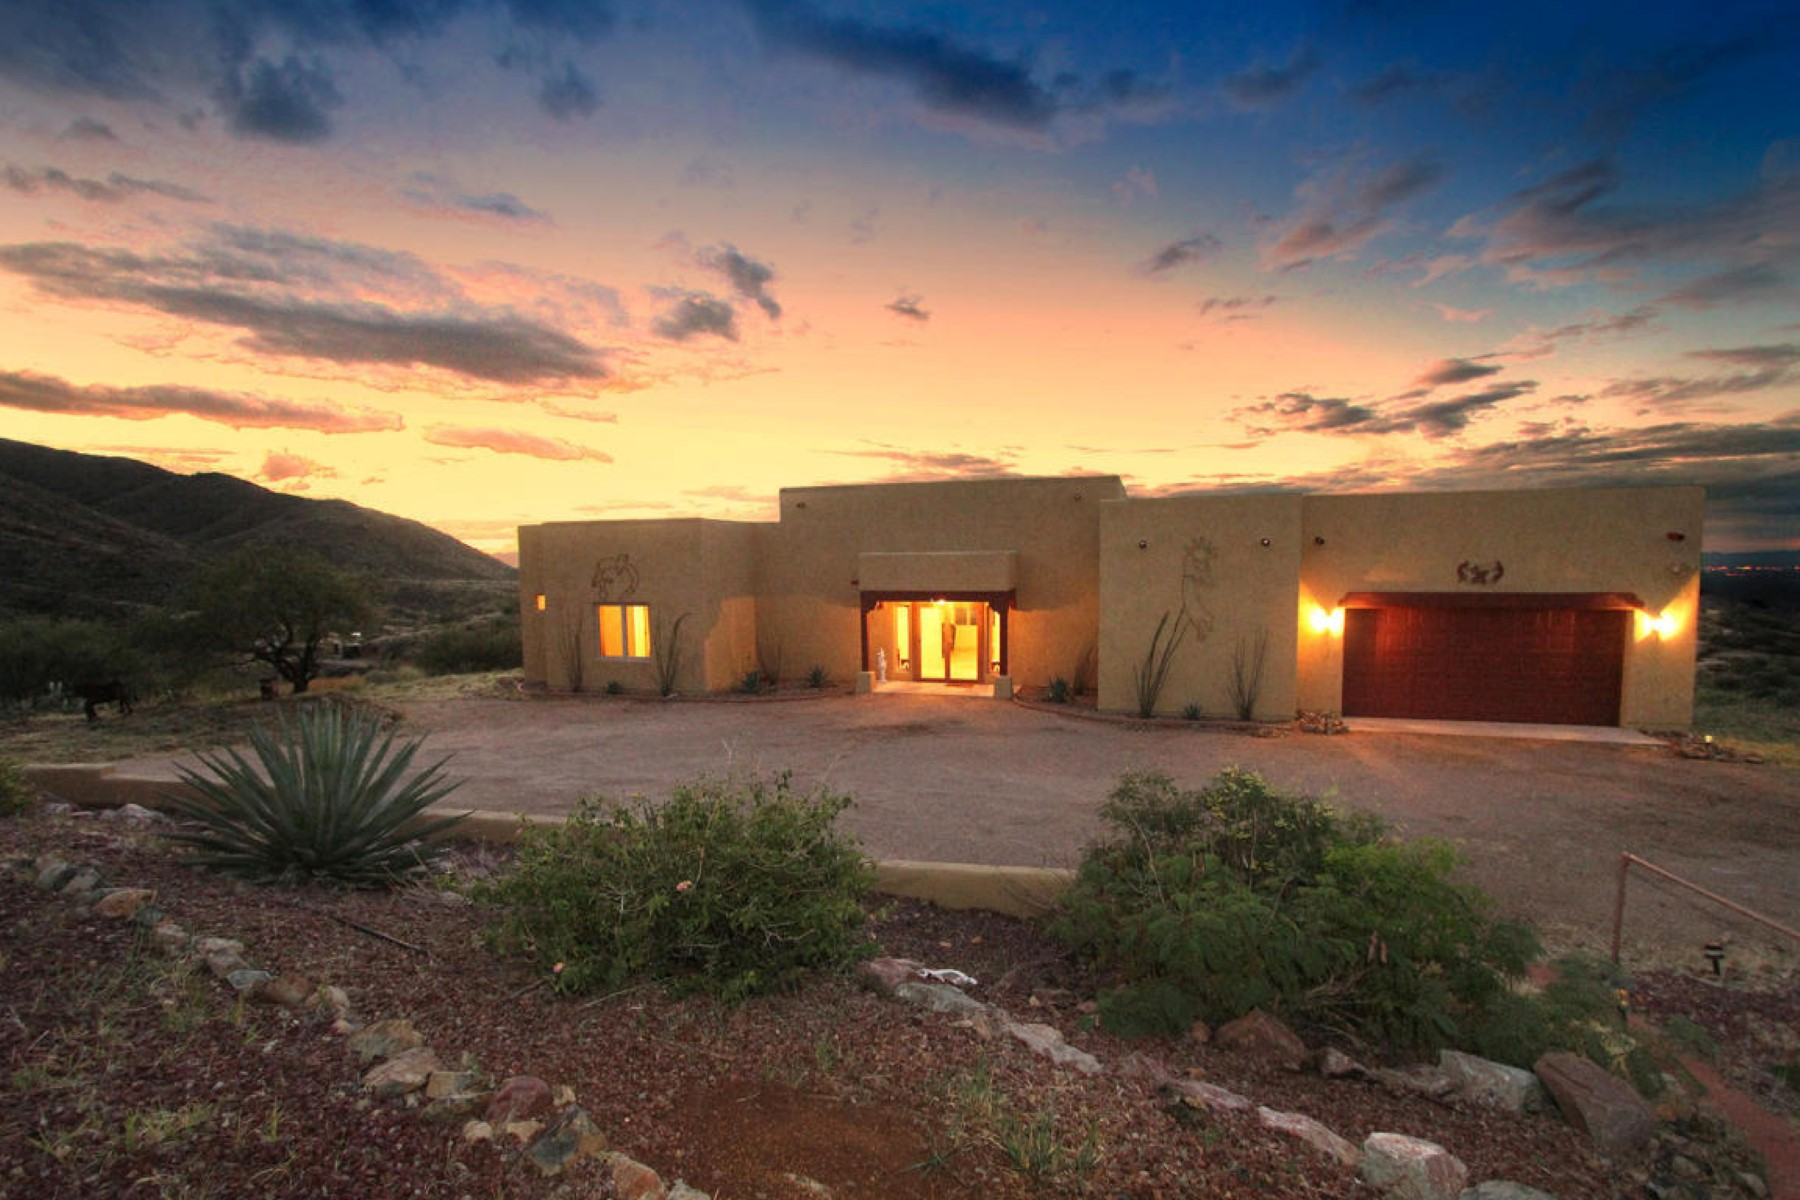 Single Family Home for Sale at Five acres of rolling mountain, sunrise, sunset and valley views 18361 S Camino Chuboso Vail, Arizona 85641 United States